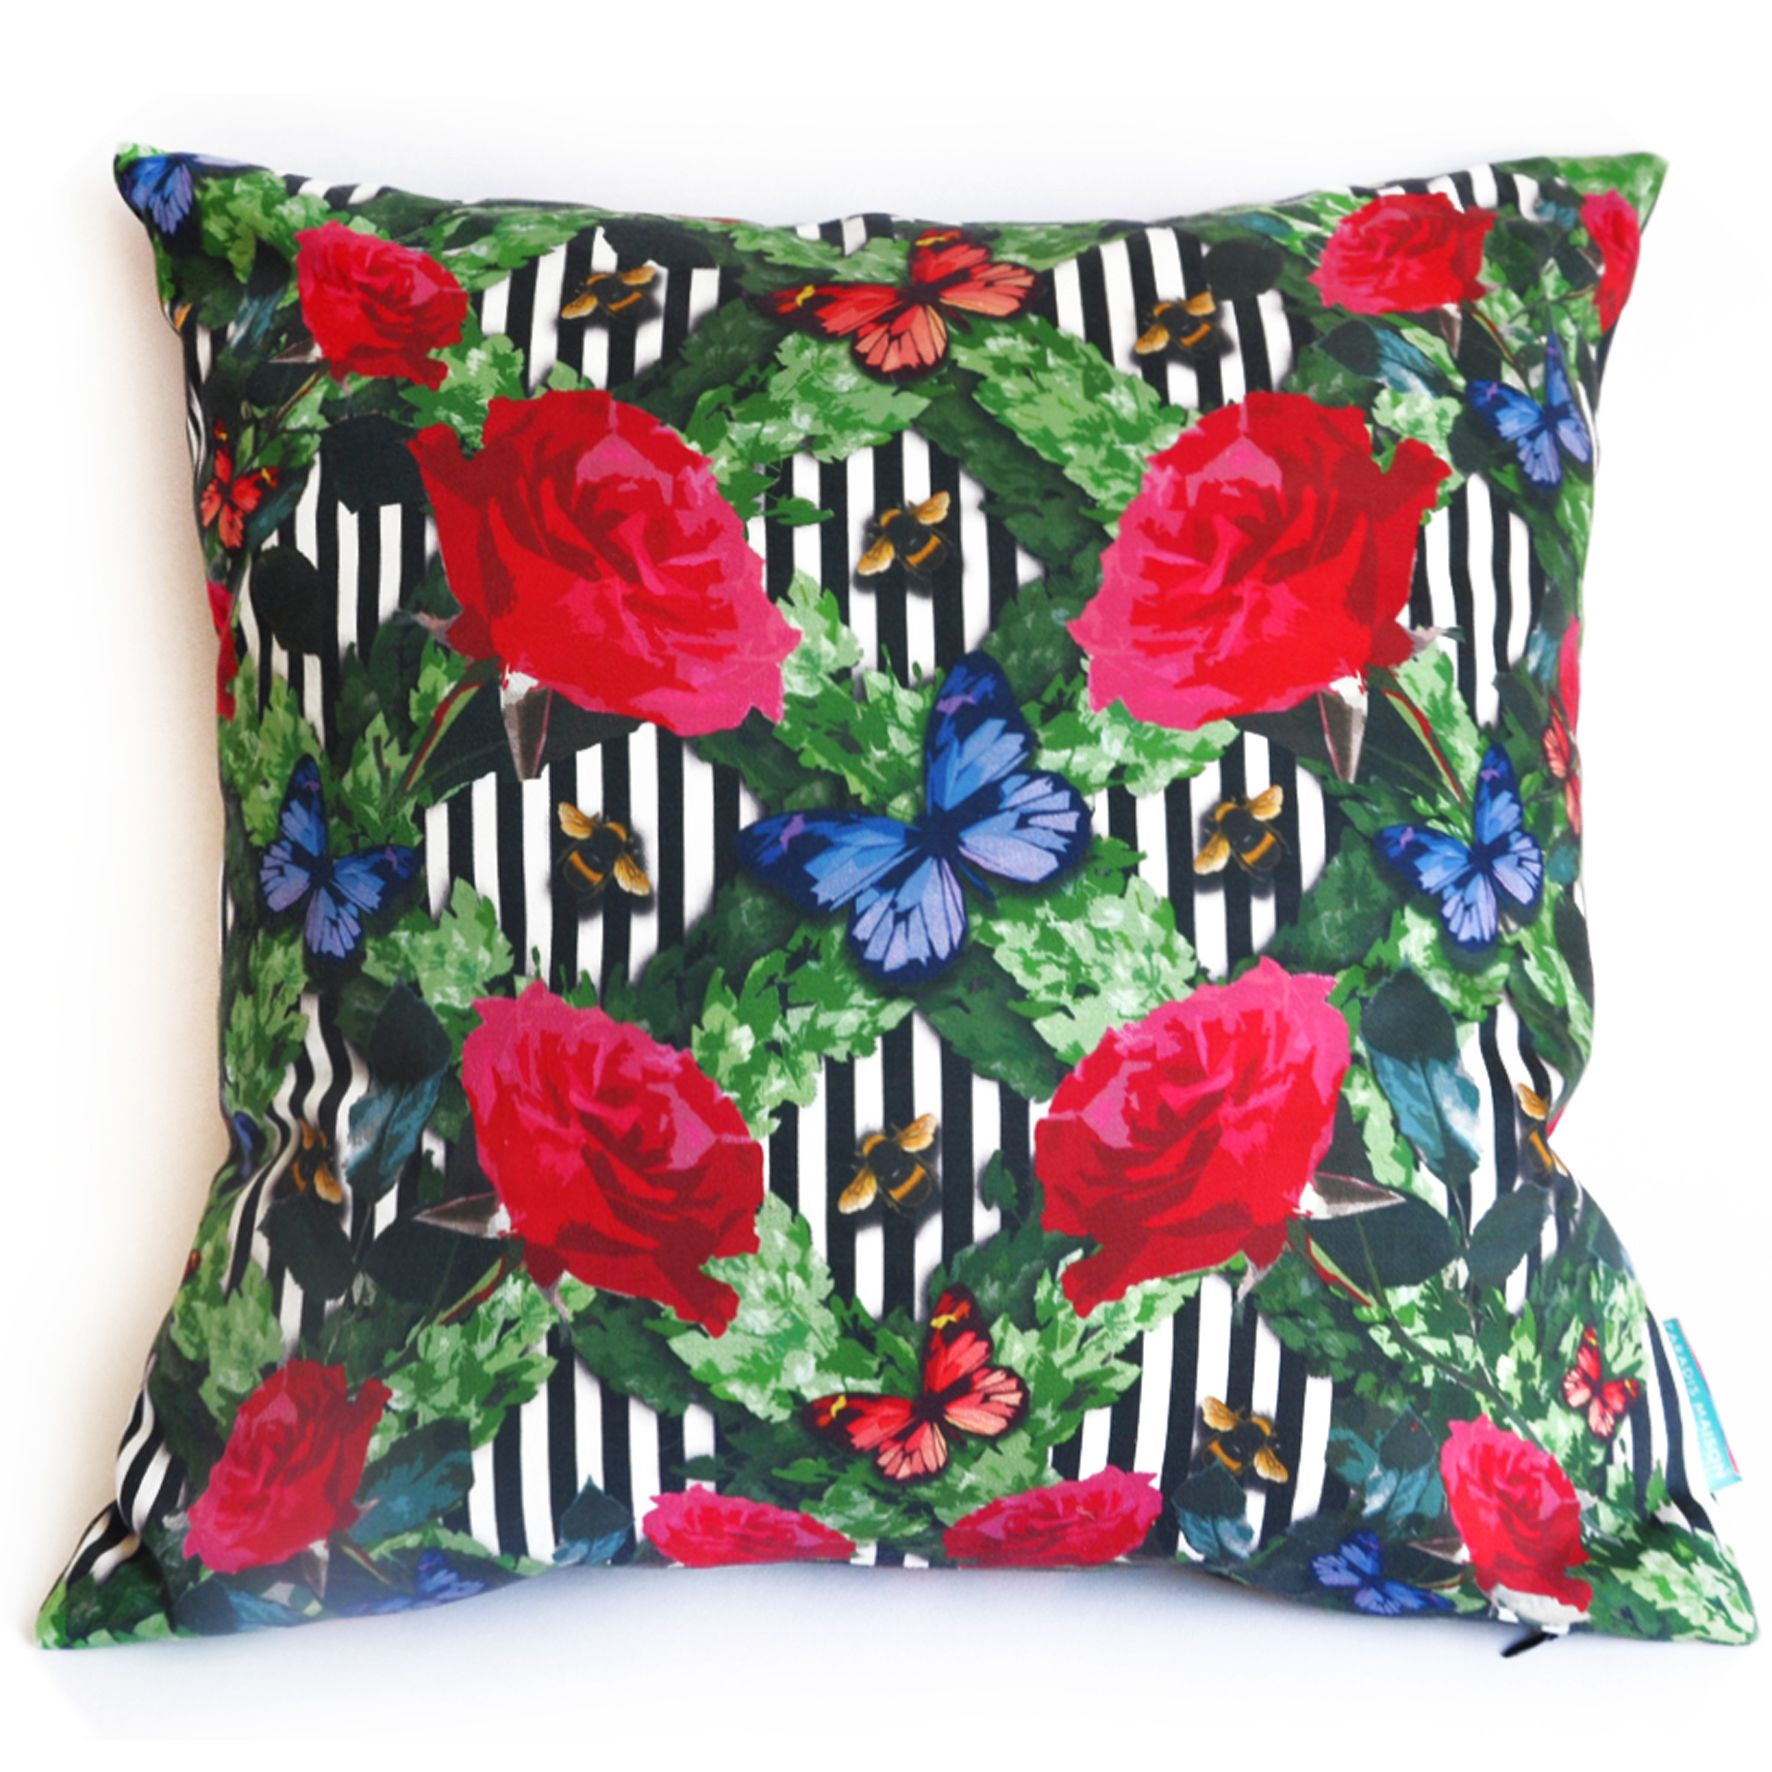 Roses in paradis pillow in paradis maison store